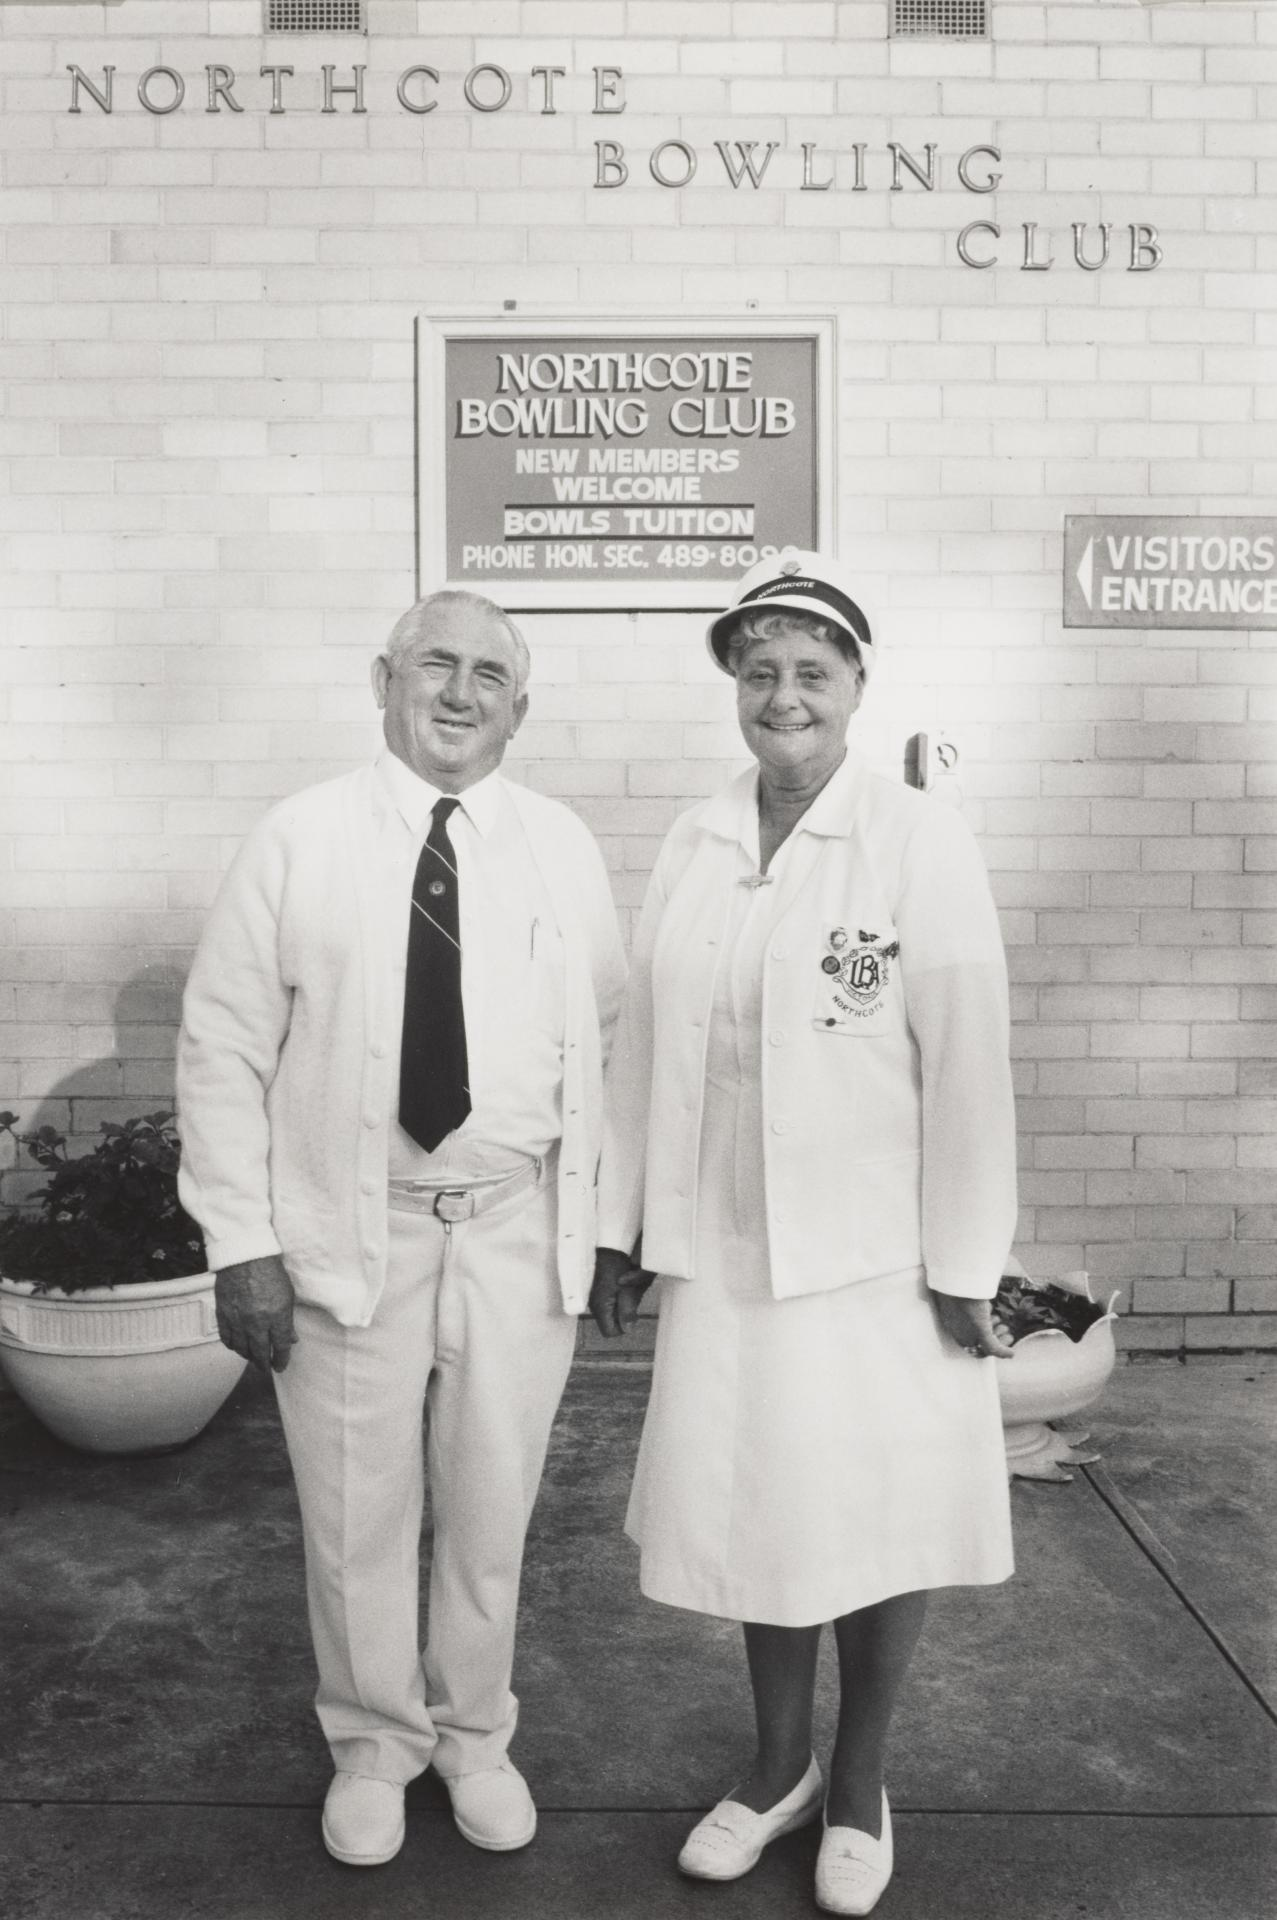 Lillian and Geoff Godwill, members of the Northcote Bowling Club